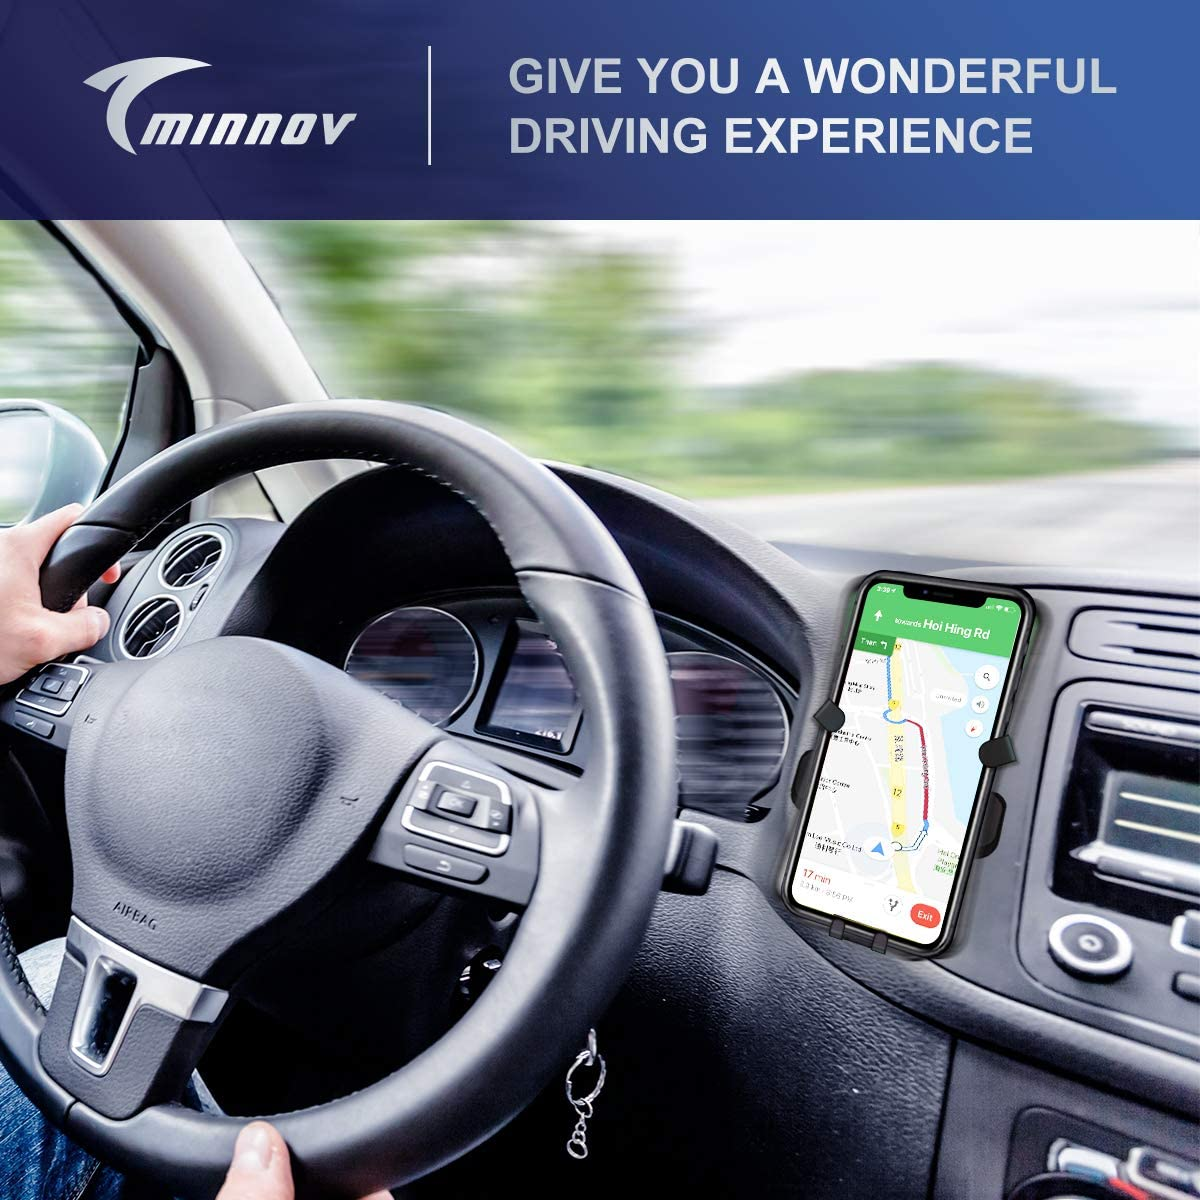 Gravity Cell Phone Mount Air Vent TMINNOV Car Phone Holder Auto Clamping Auto-Lock and Auto-Release Compatible with iPhone 6 7 8 X 11 and More Universal Mobile Phone